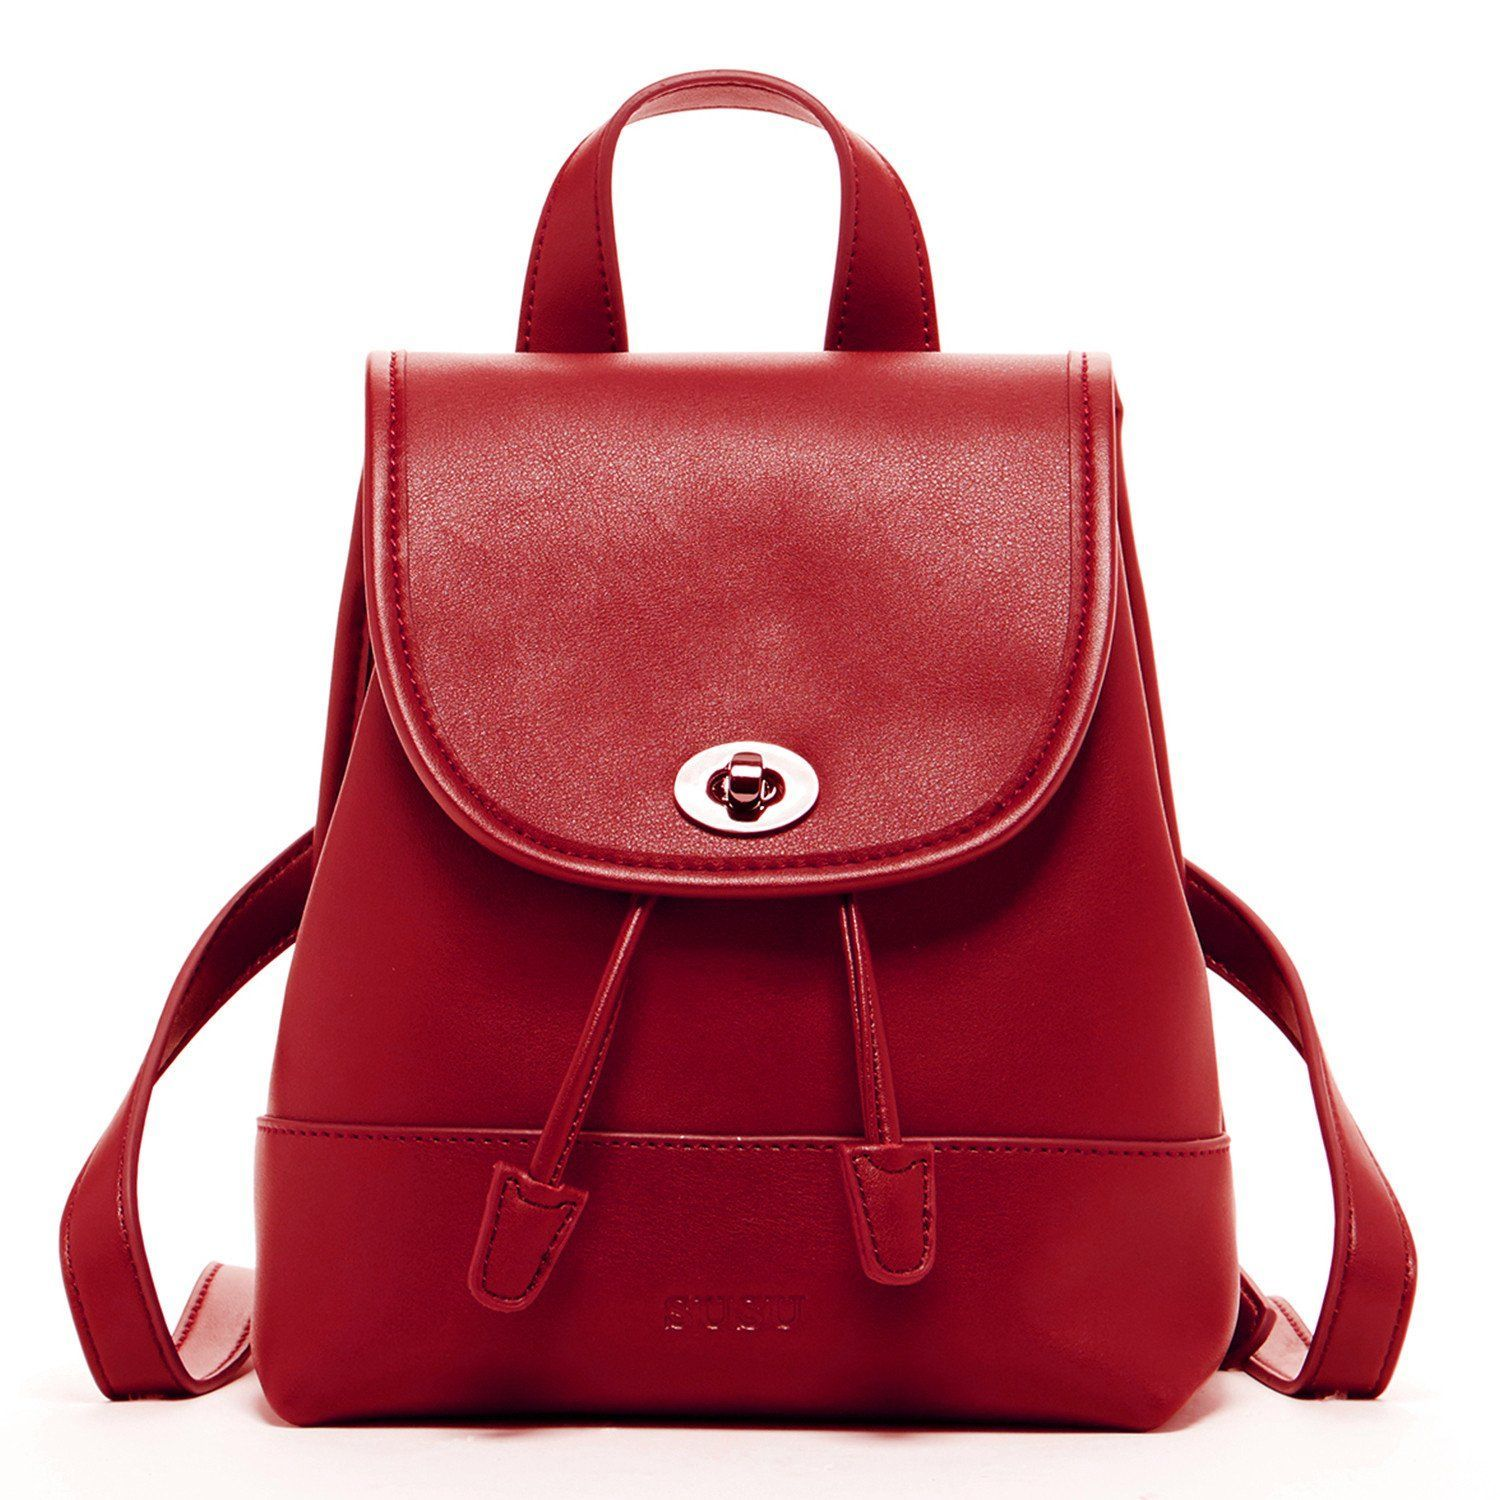 7f226be7fe2 Nicole Leather Backpack Red   StitchFixIdeas   Leather backpack ...